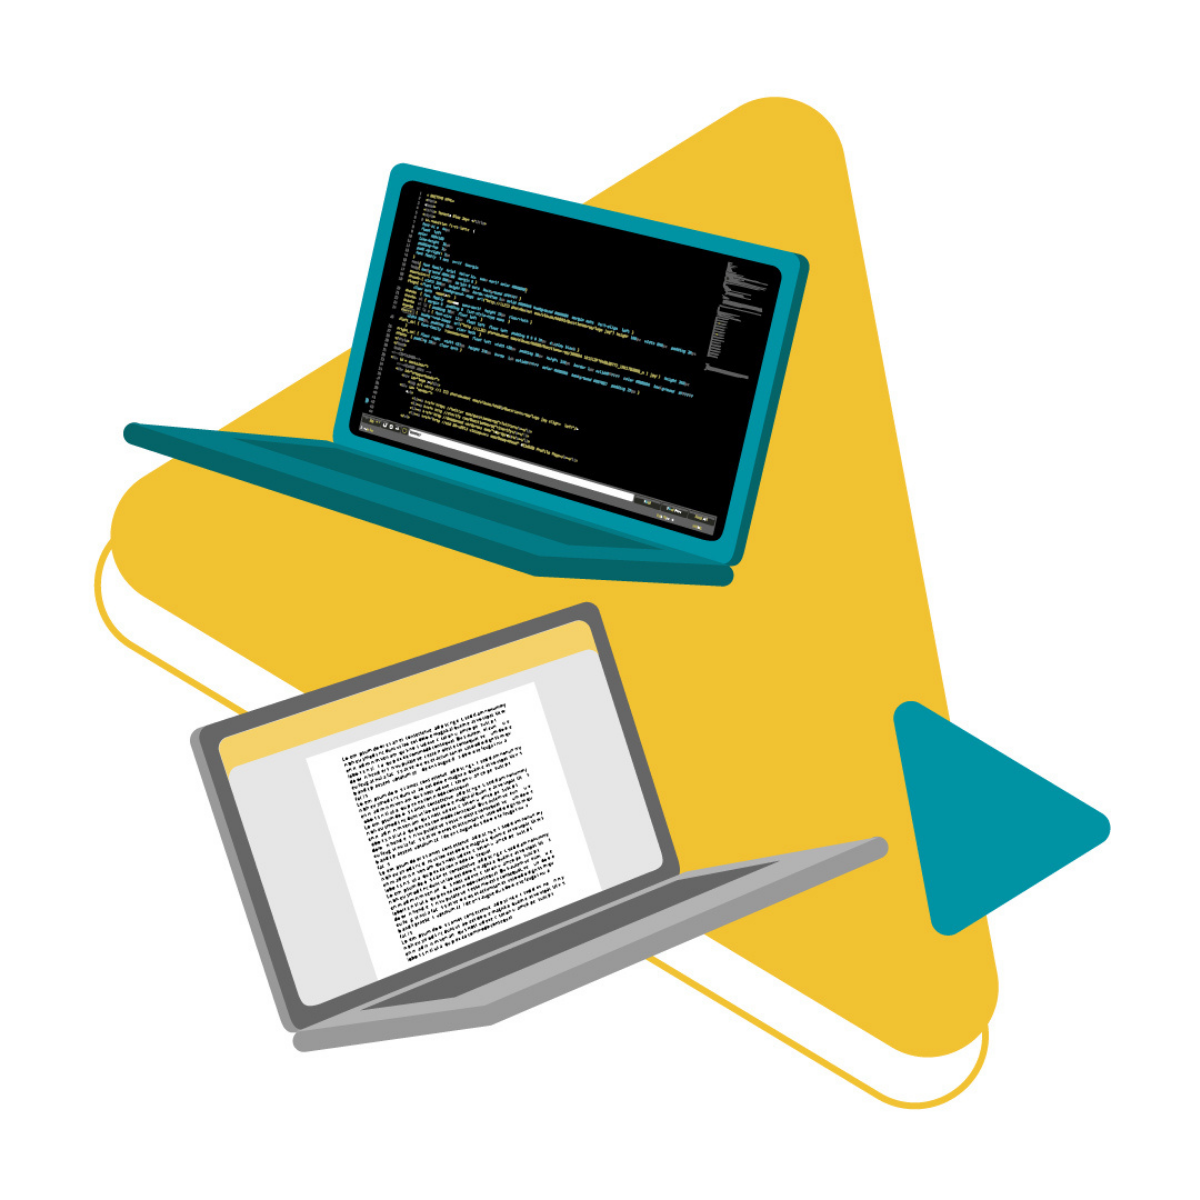 2 laptops, one with HTML code and another with writing document - Etymon